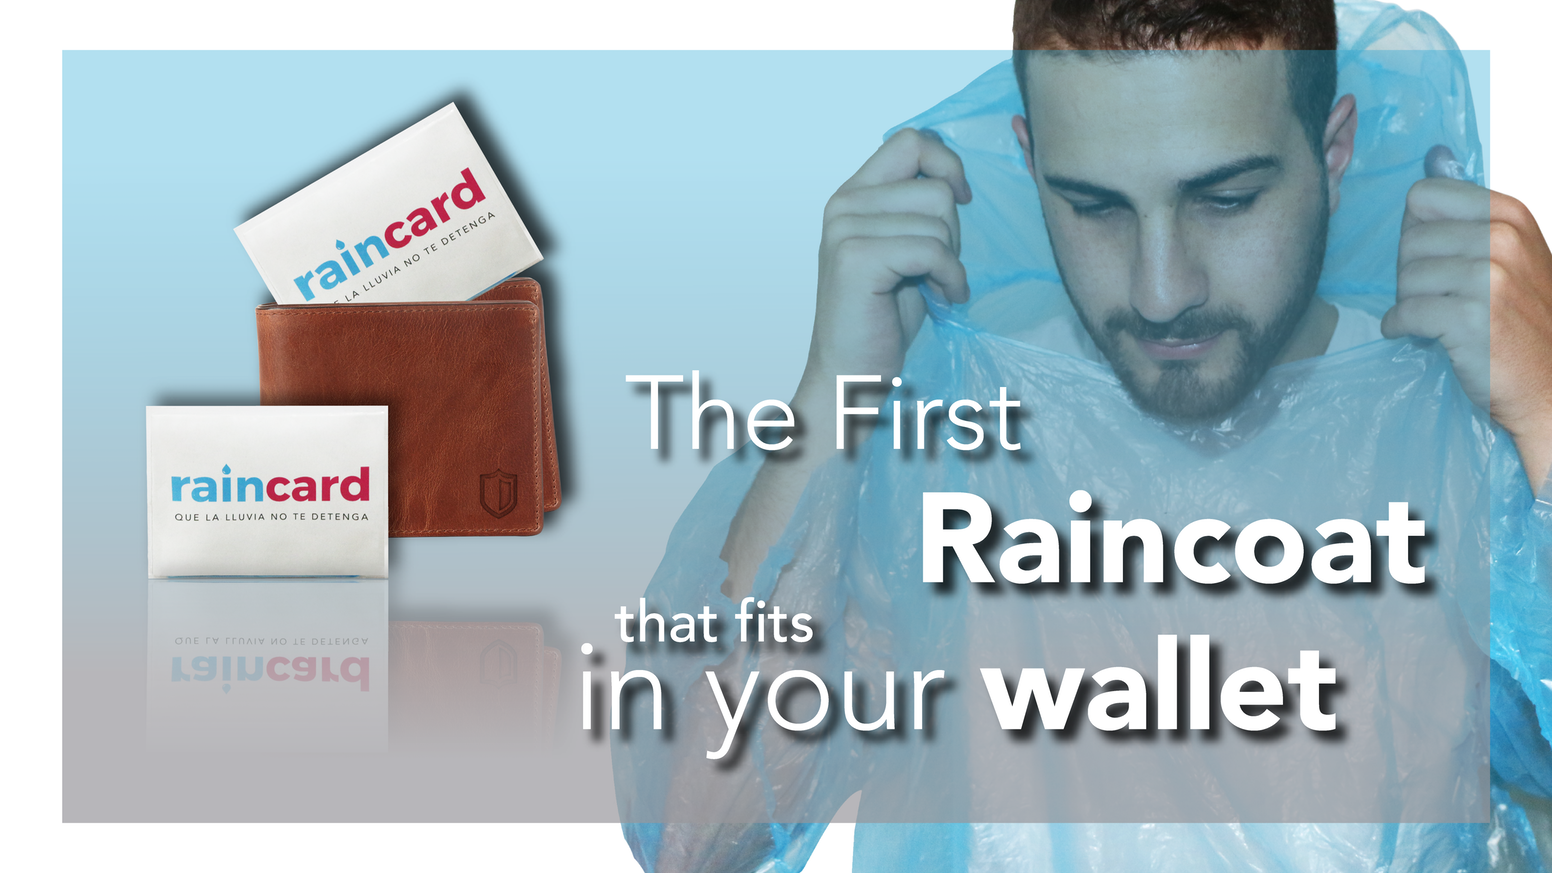 Raincard was designed to fit in your wallet, your pocket or anywhere!